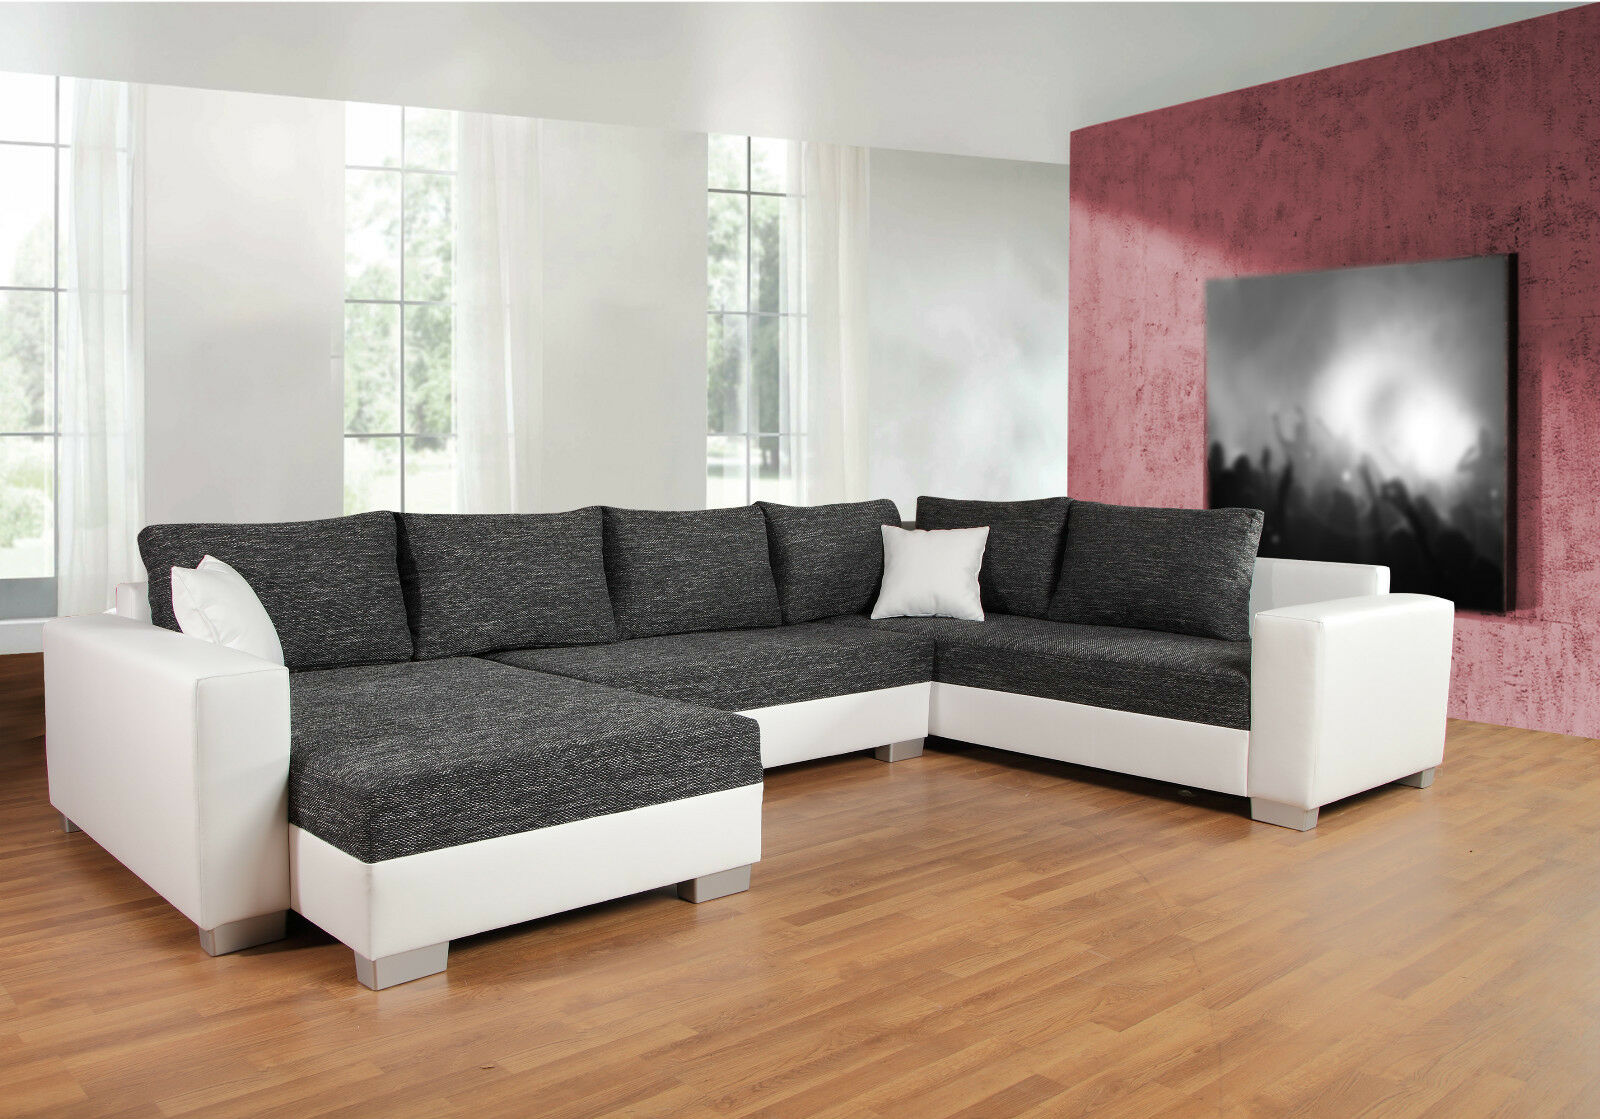 sofa u form mit schlaffunktion latribuna. Black Bedroom Furniture Sets. Home Design Ideas